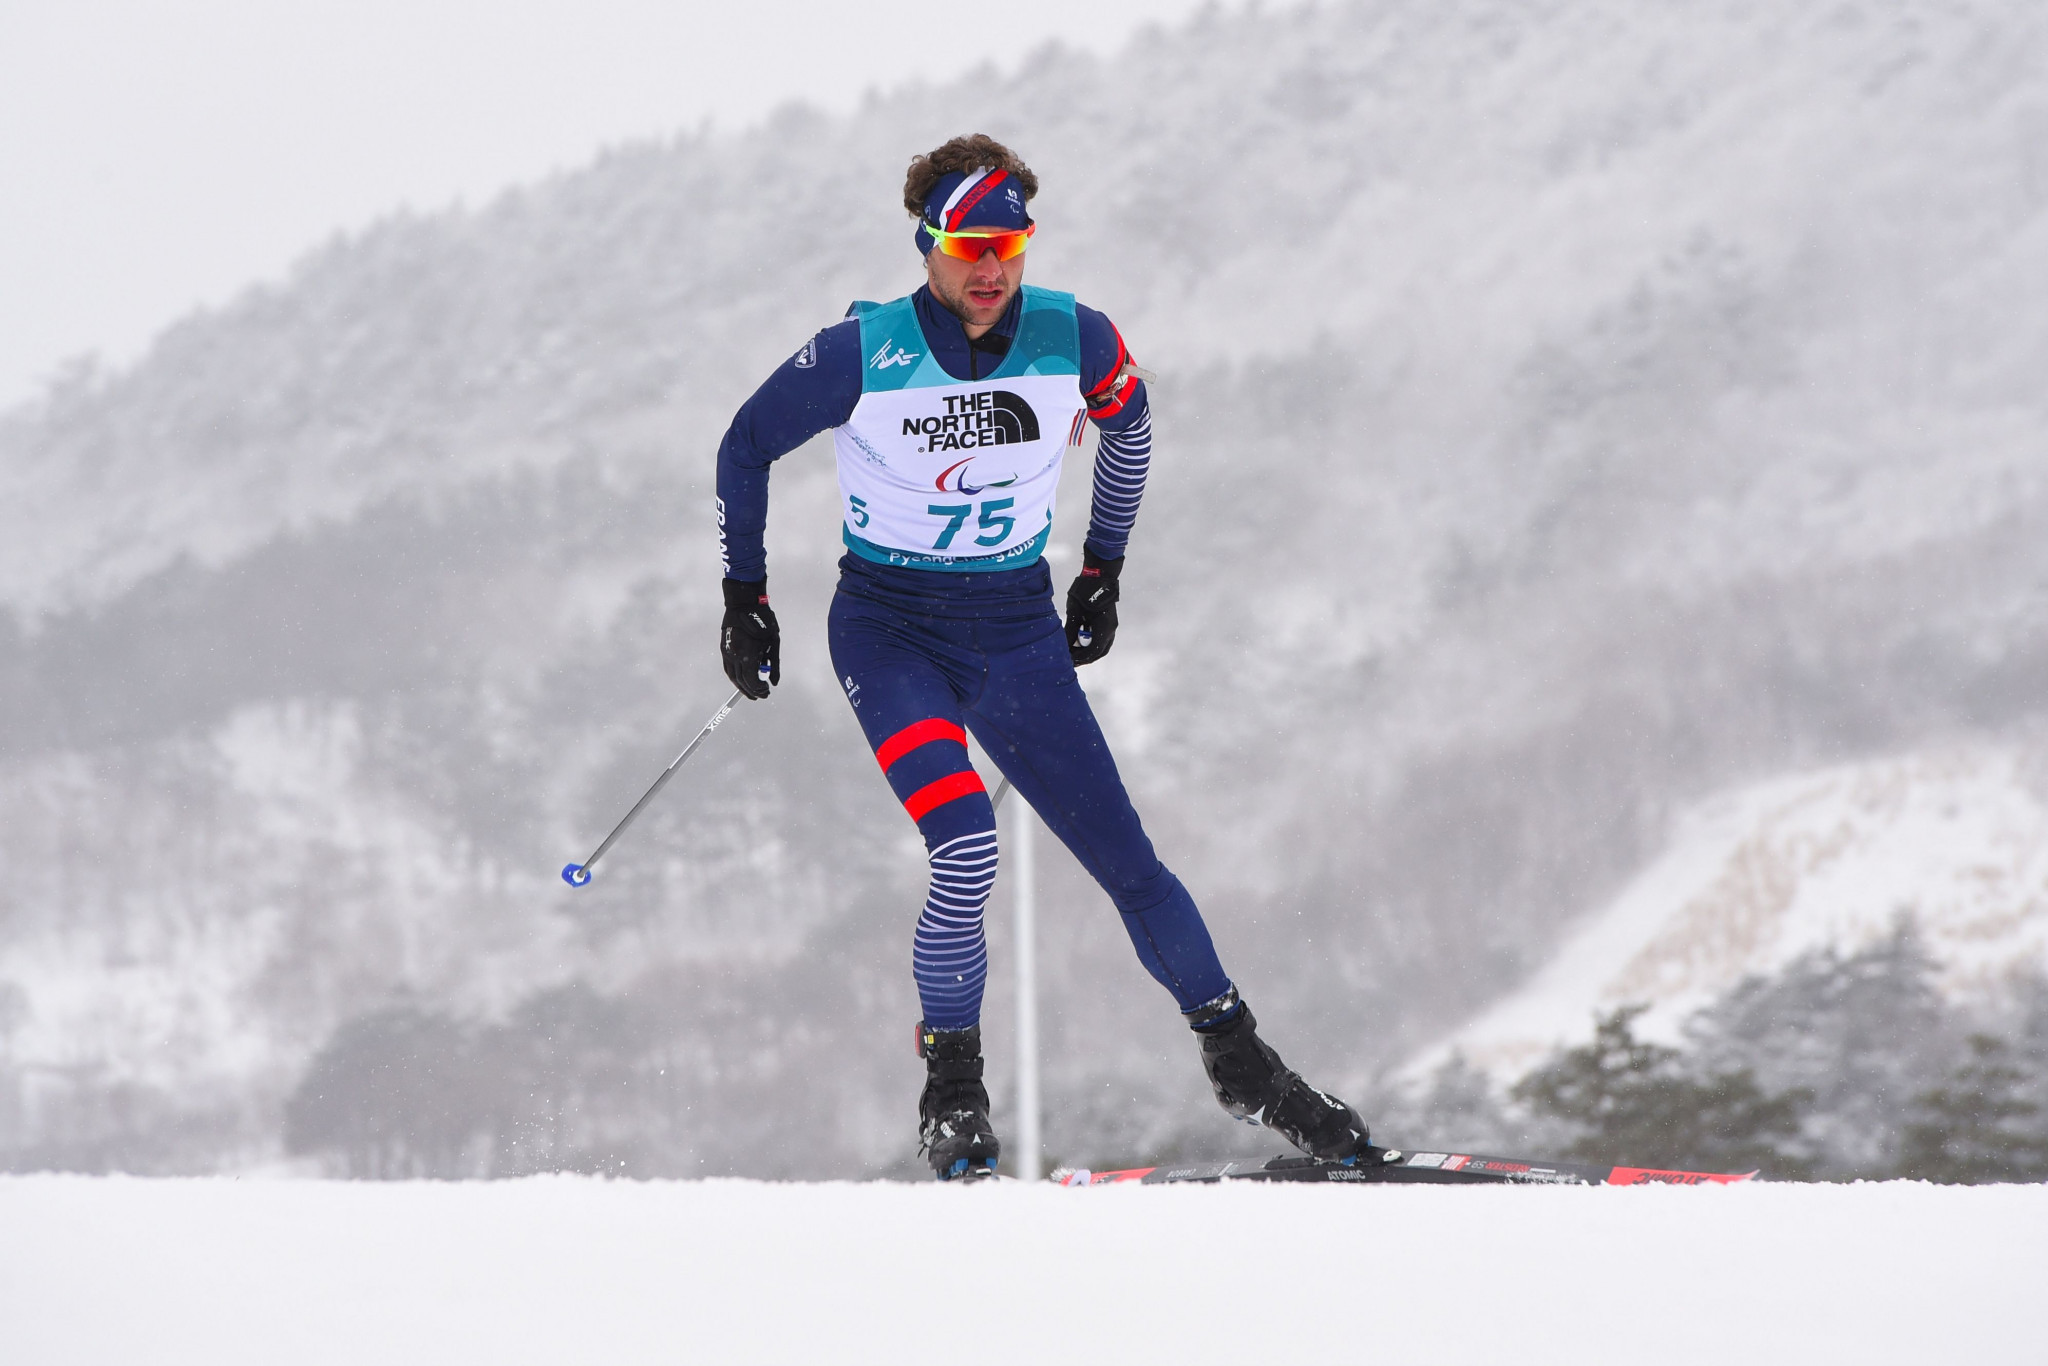 Paralympic champion Benjamin Daviet of France won his third gold medal of the World Para Nordic Skiing World Cup in Östersund ©Getty Images